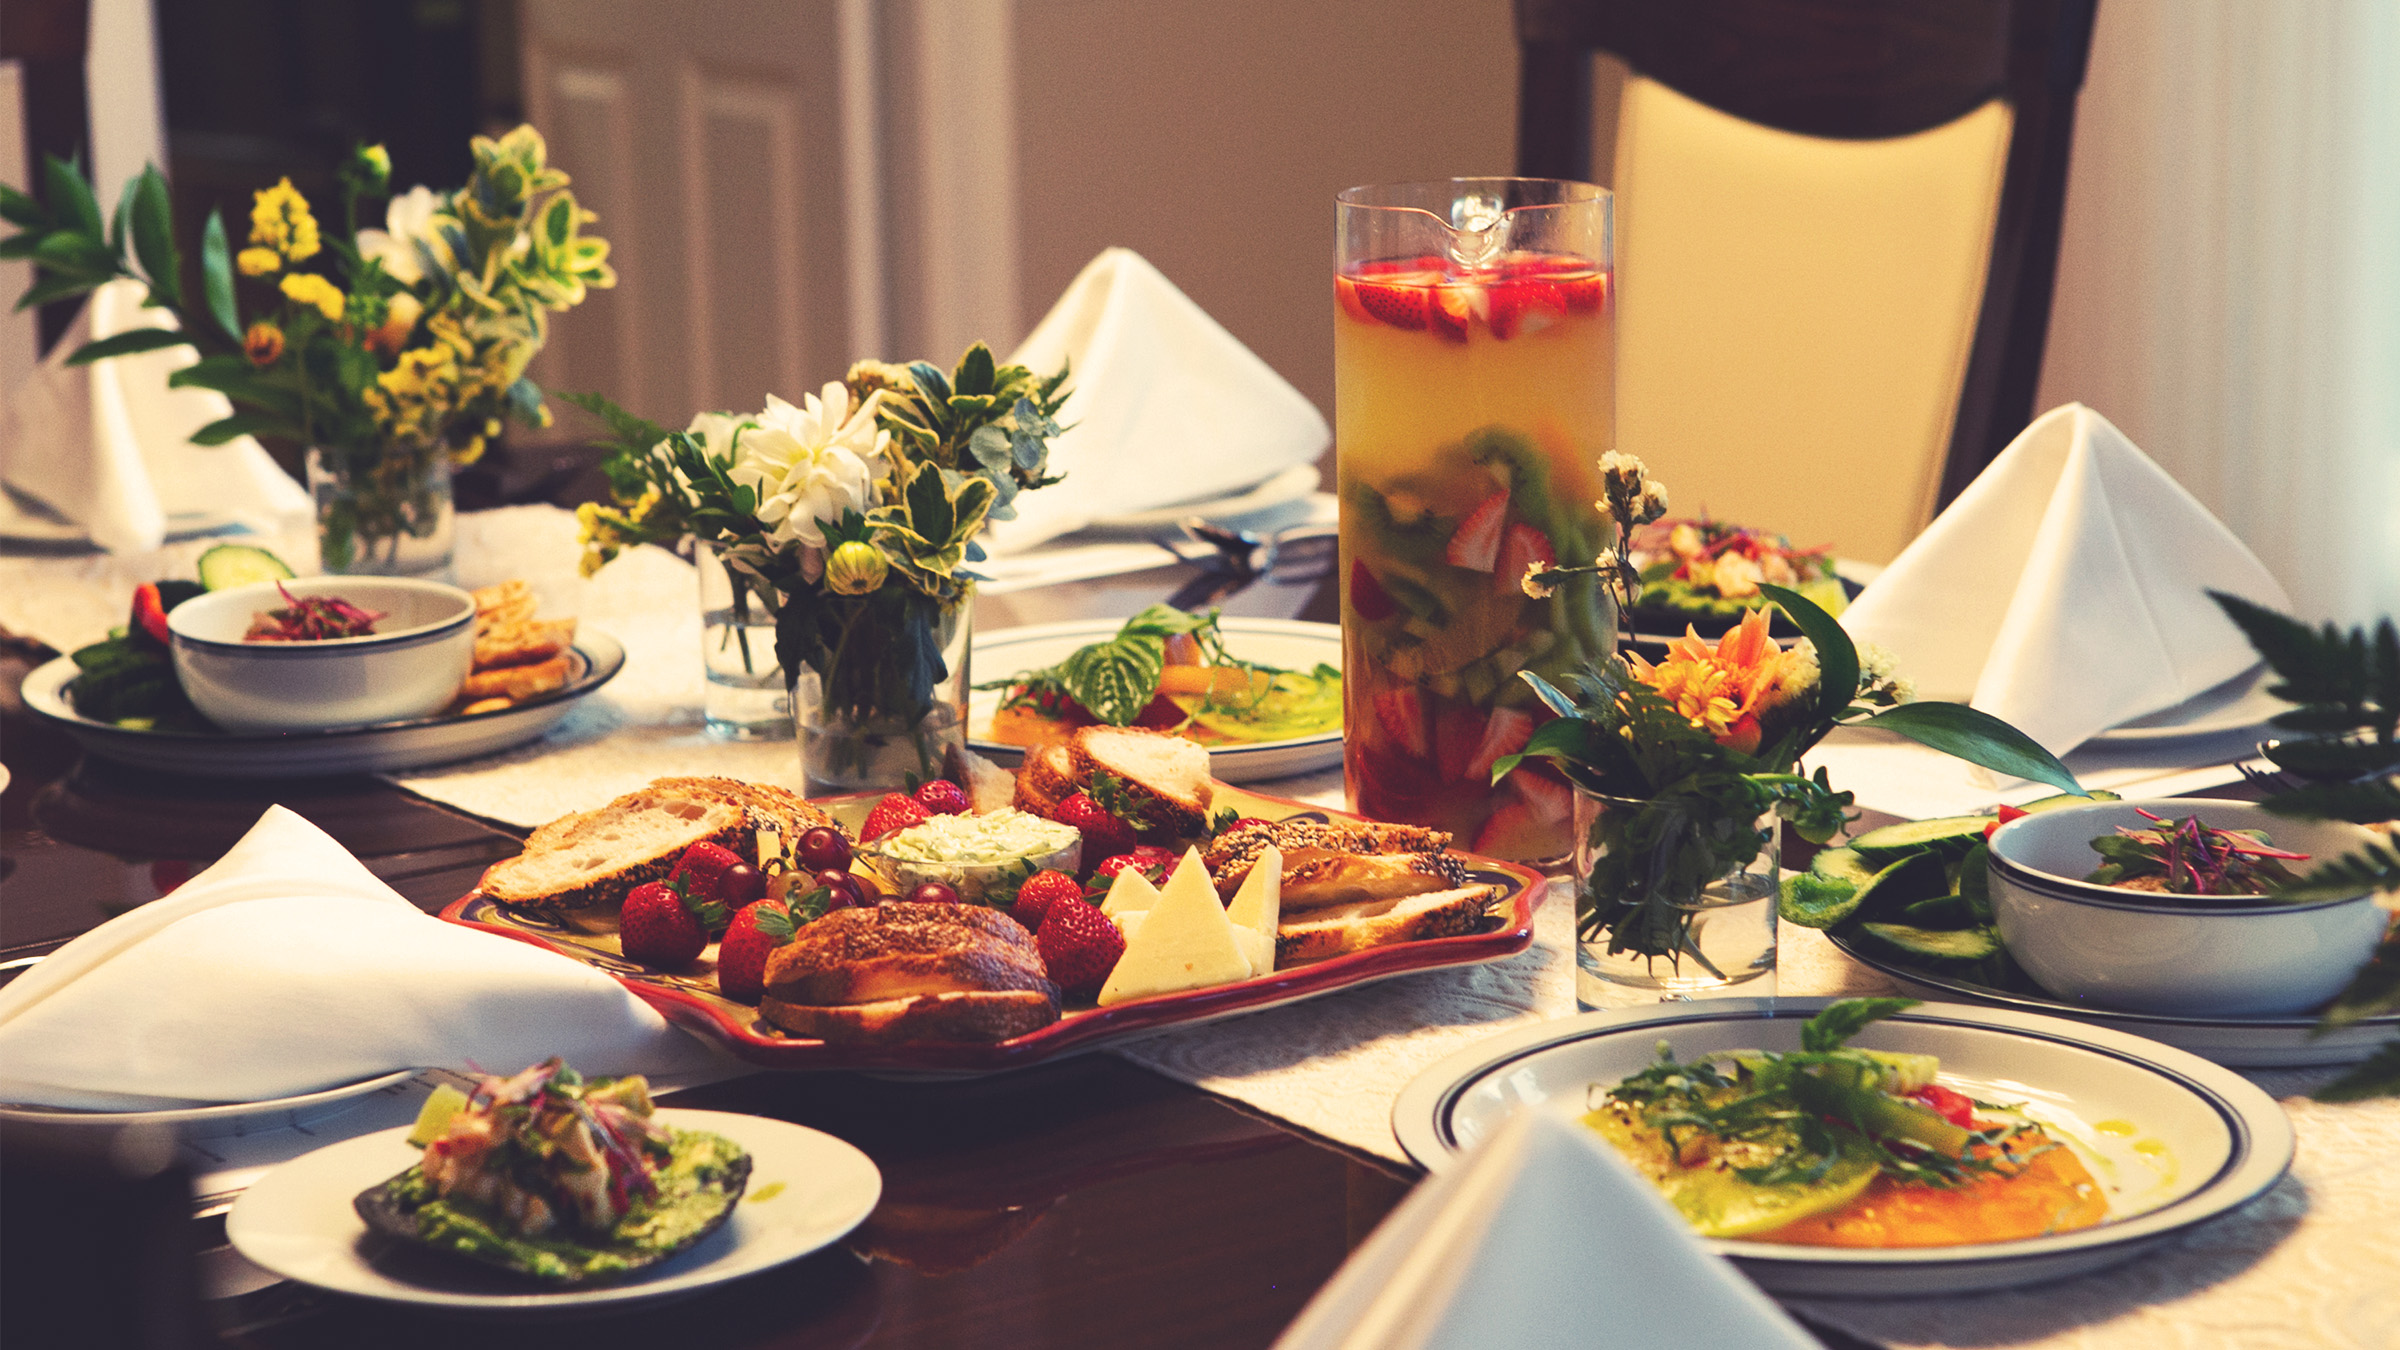 Photo of food on table